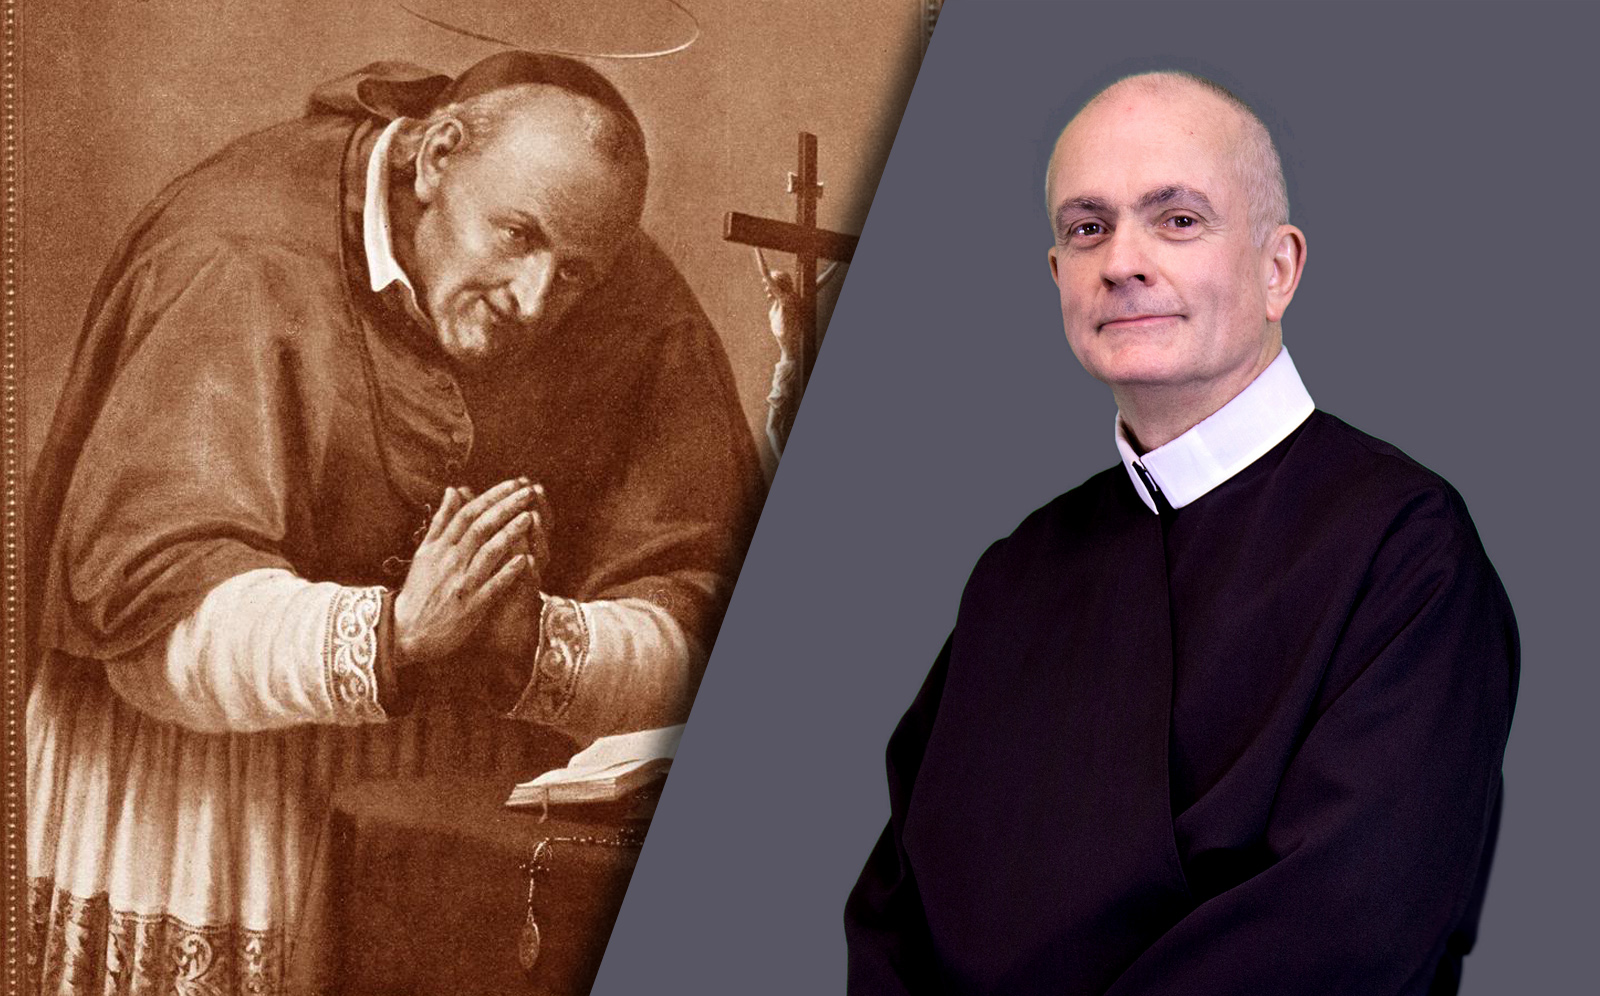 st dr alphonsus and fr general cssr